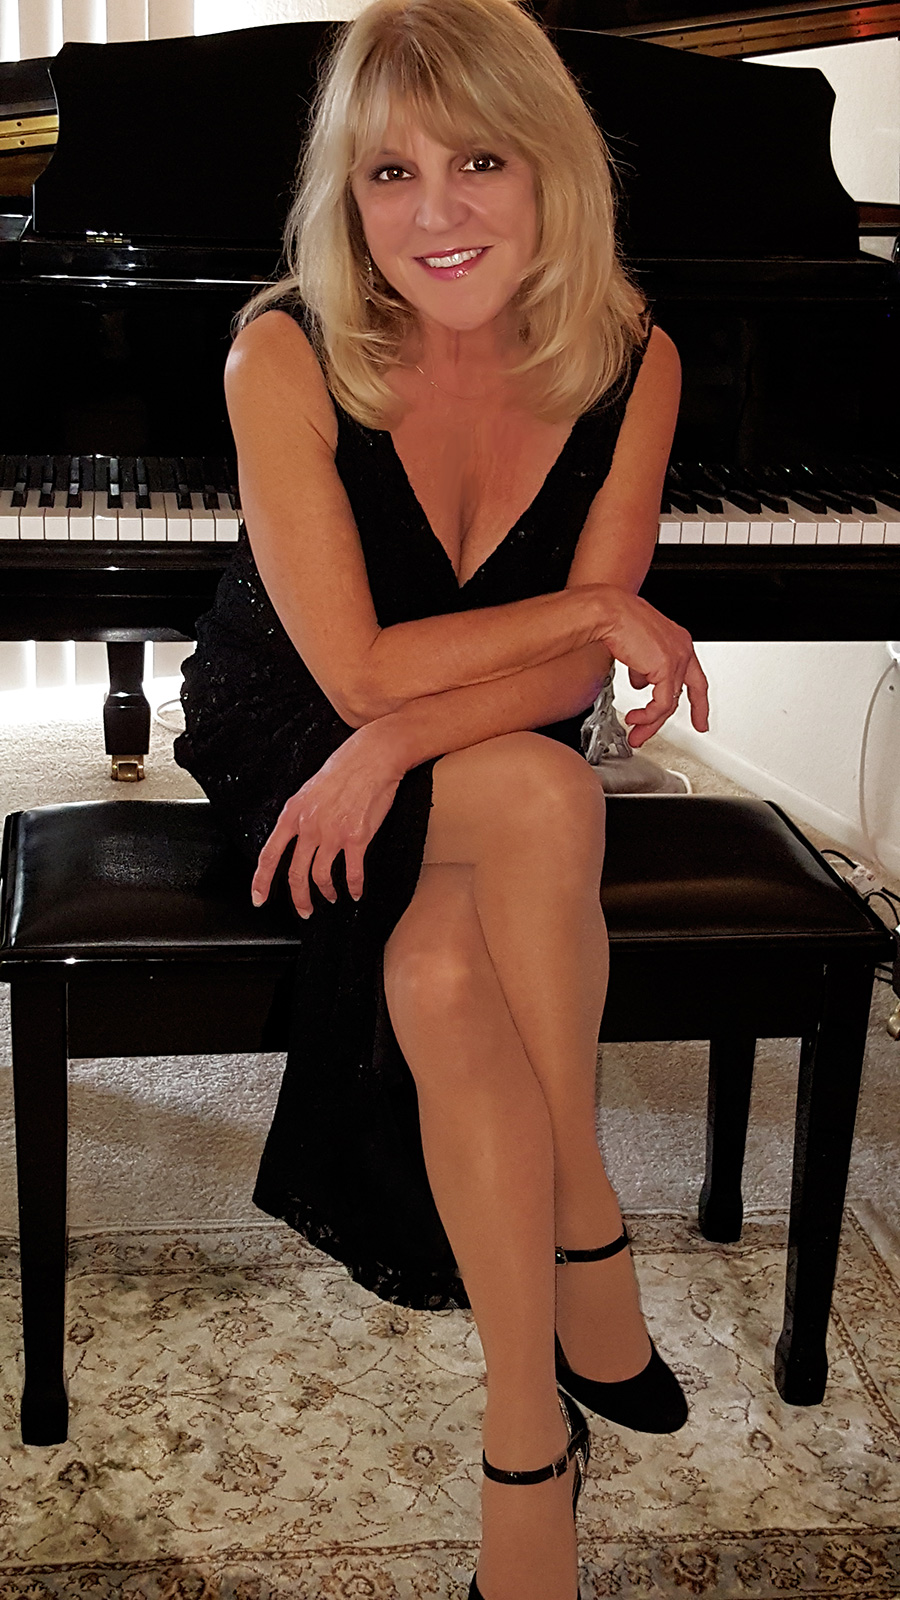 CLAUDIA-PIANO-SMILE-WEB